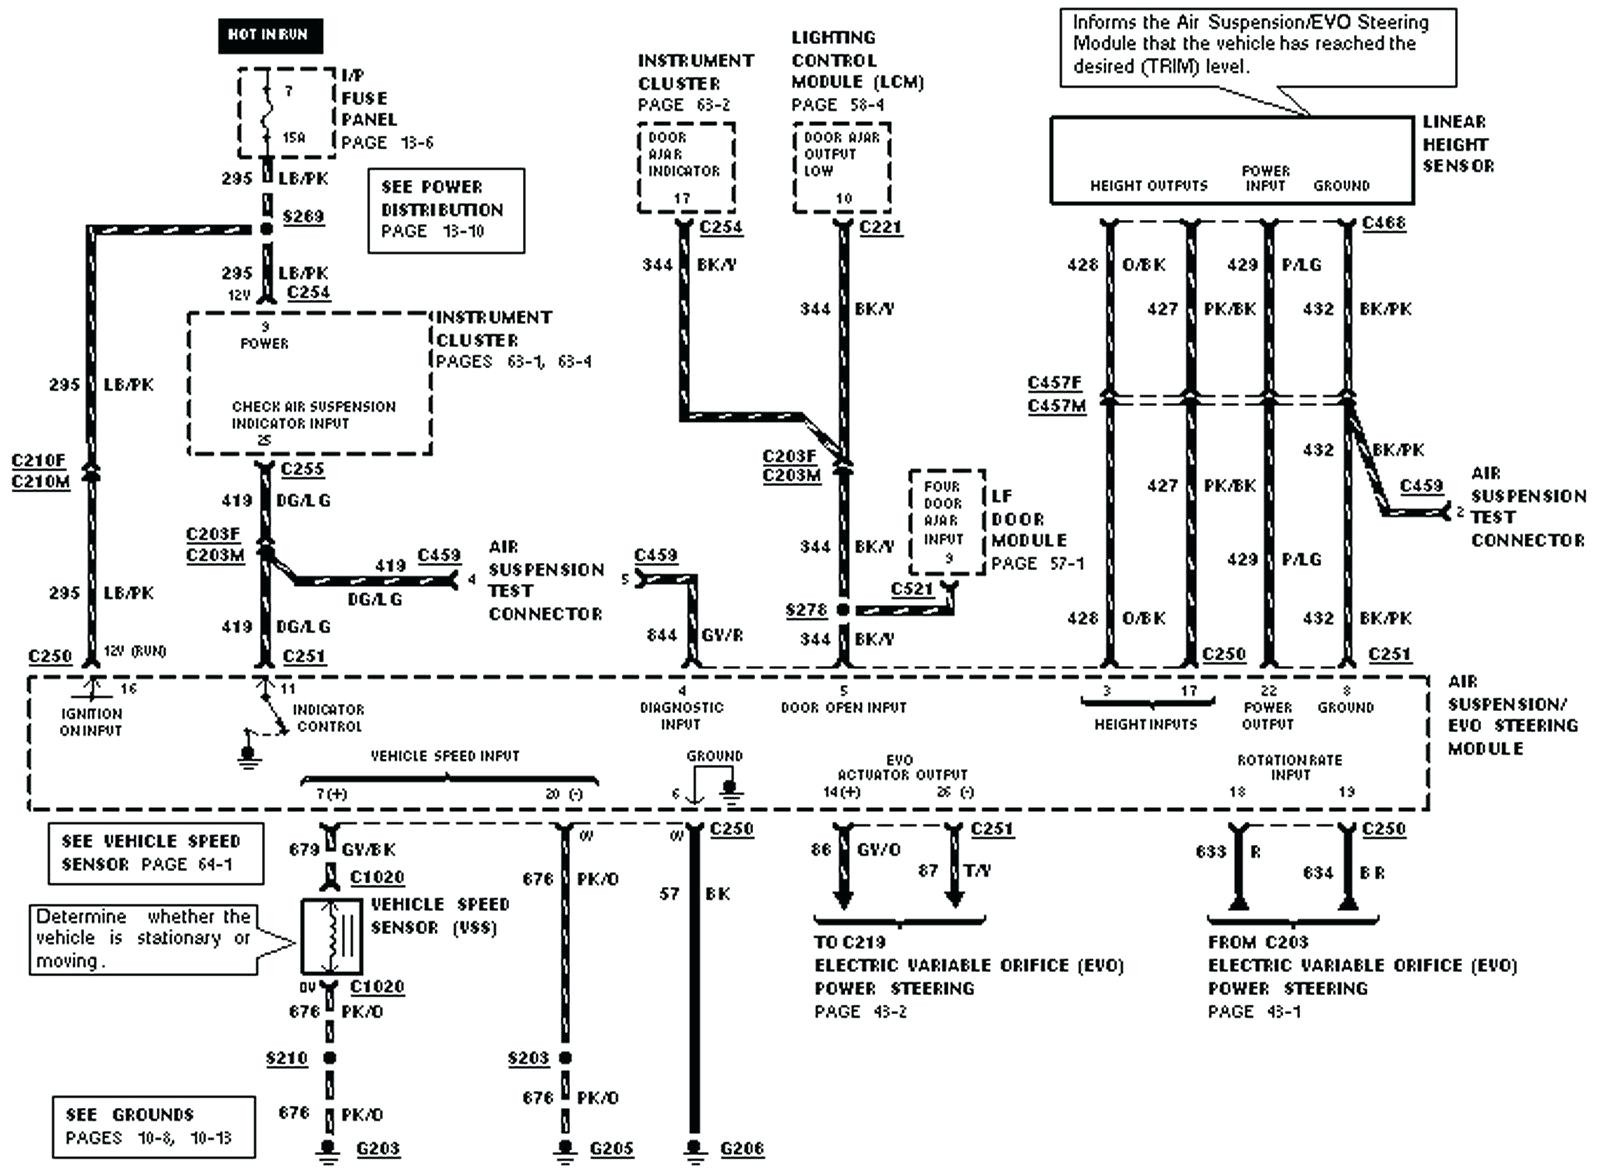 2000 Lincoln Continental Wiring Diagram / 2000 Lincoln